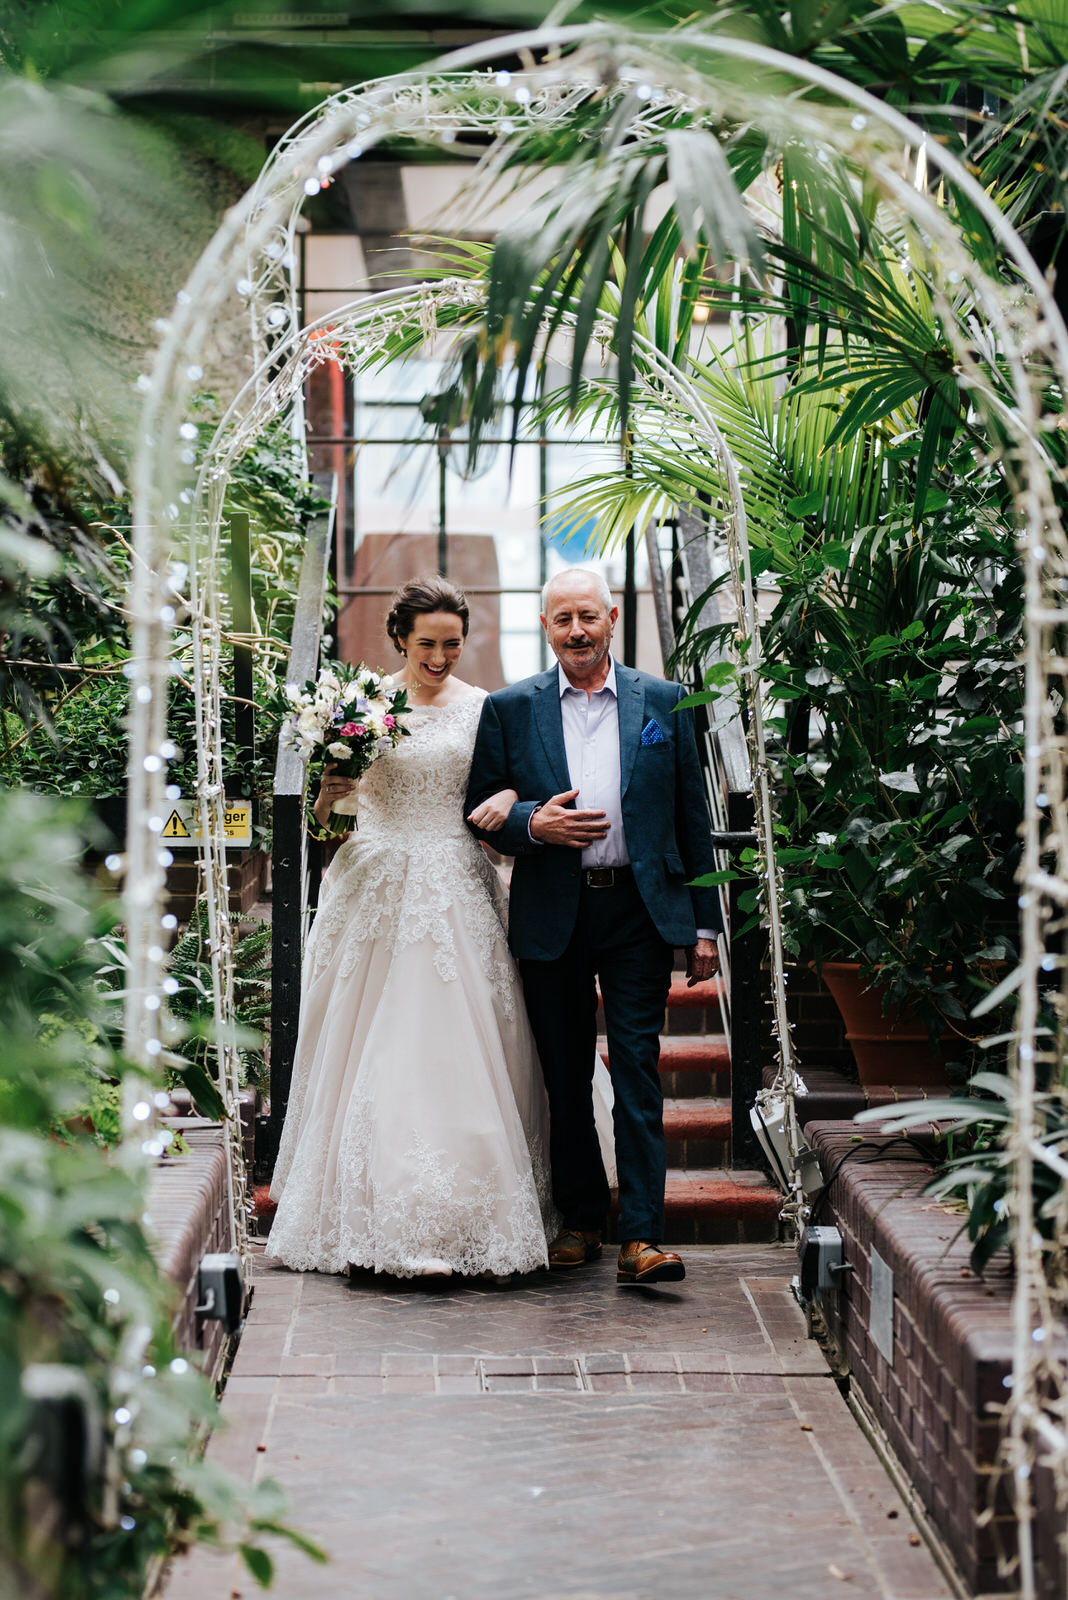 Bride and her uncle walk through lush greener and approach the a